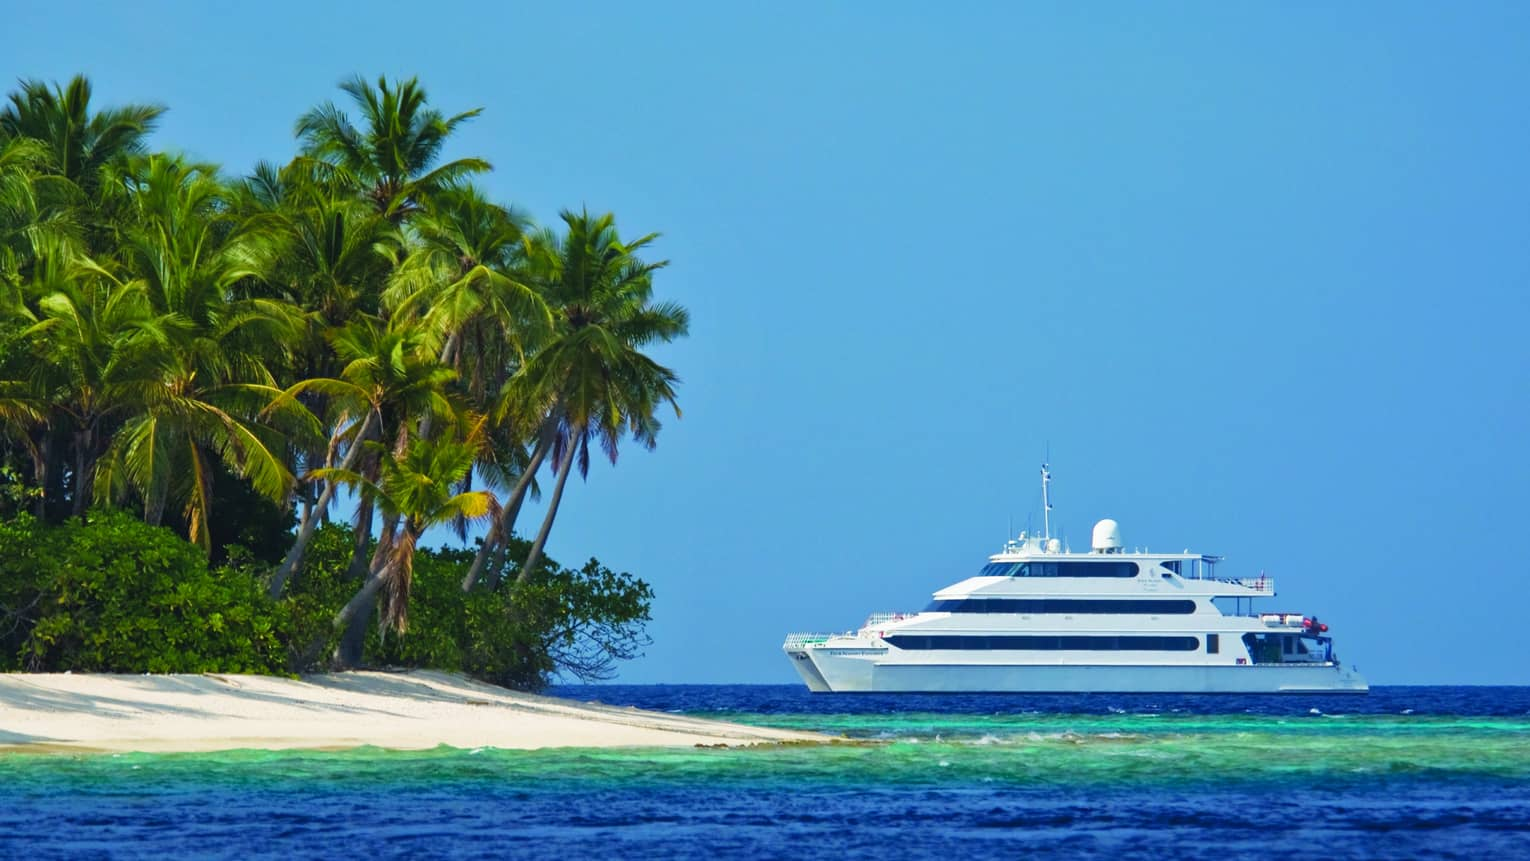 Four Seasons Explorer large white luxury catamaran near lagoon by sand beach, palm trees